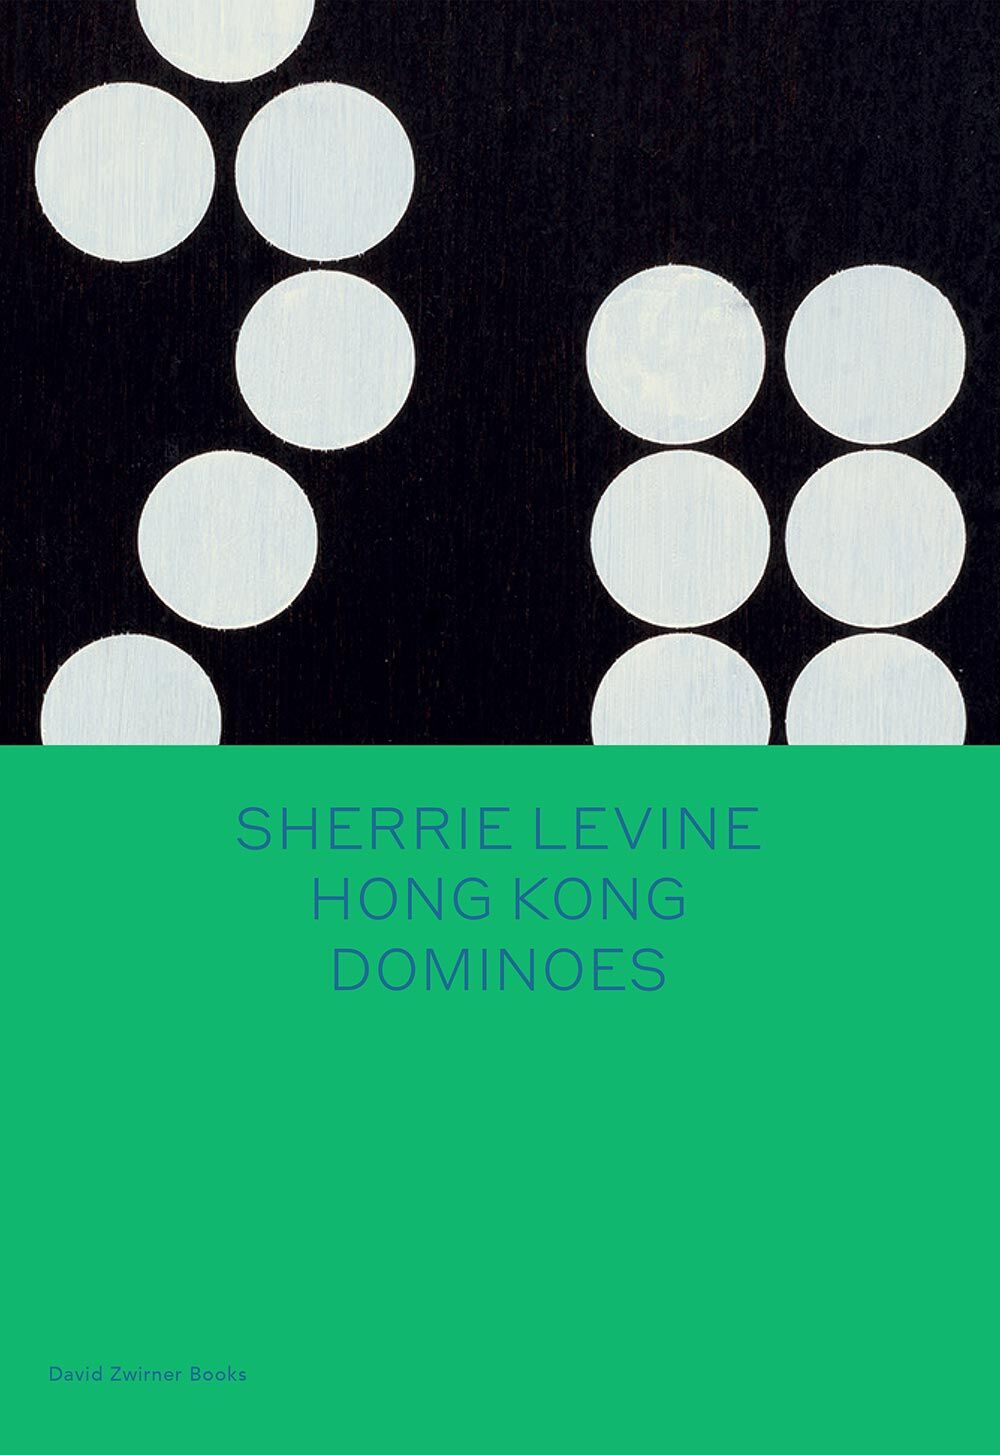 sherrie levine cover